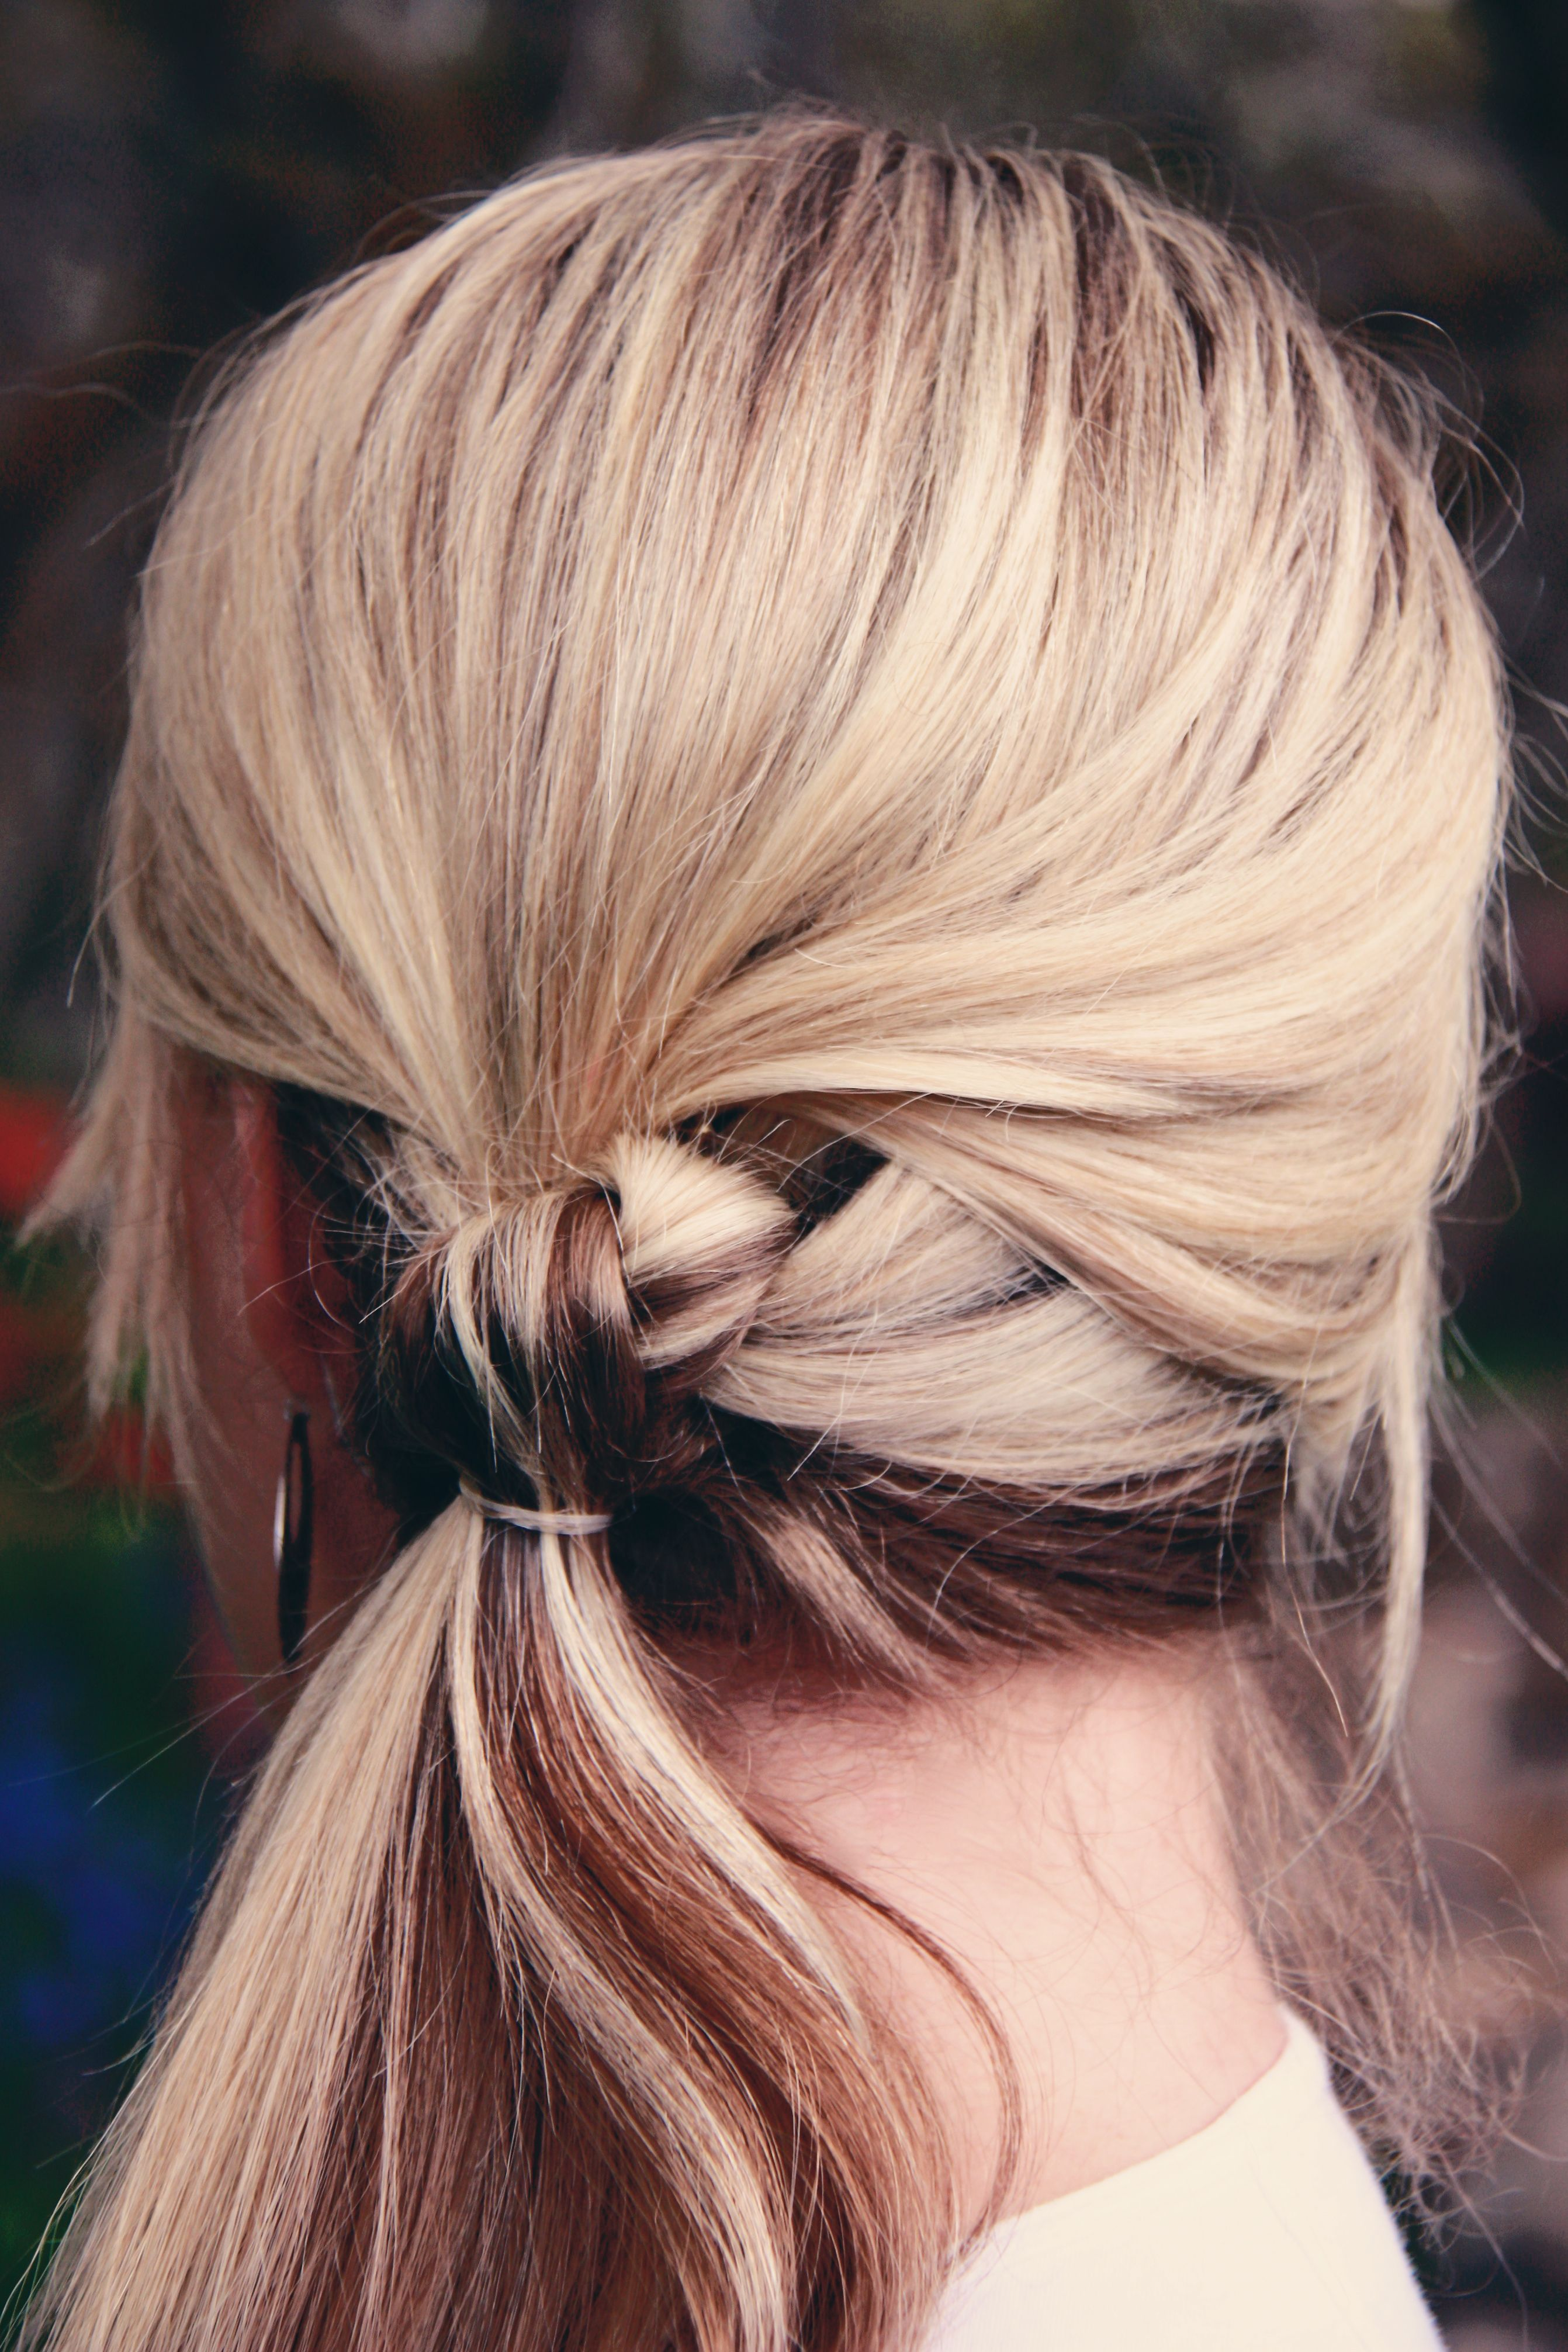 And hairstyle number  Cute huh Iuve seen knotted ponytails